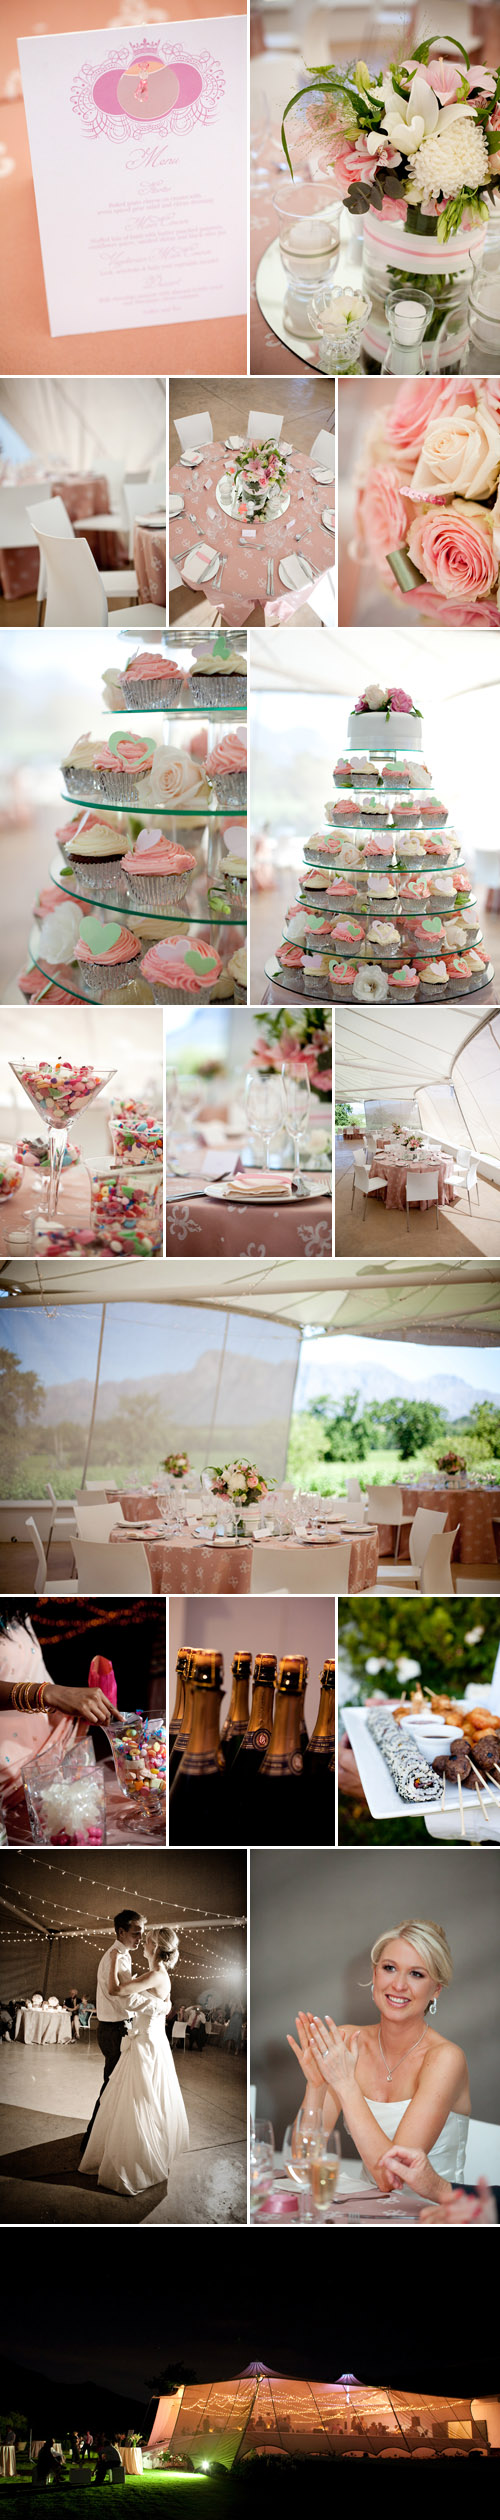 romantic South African real wedding, images from Christine Meintjes